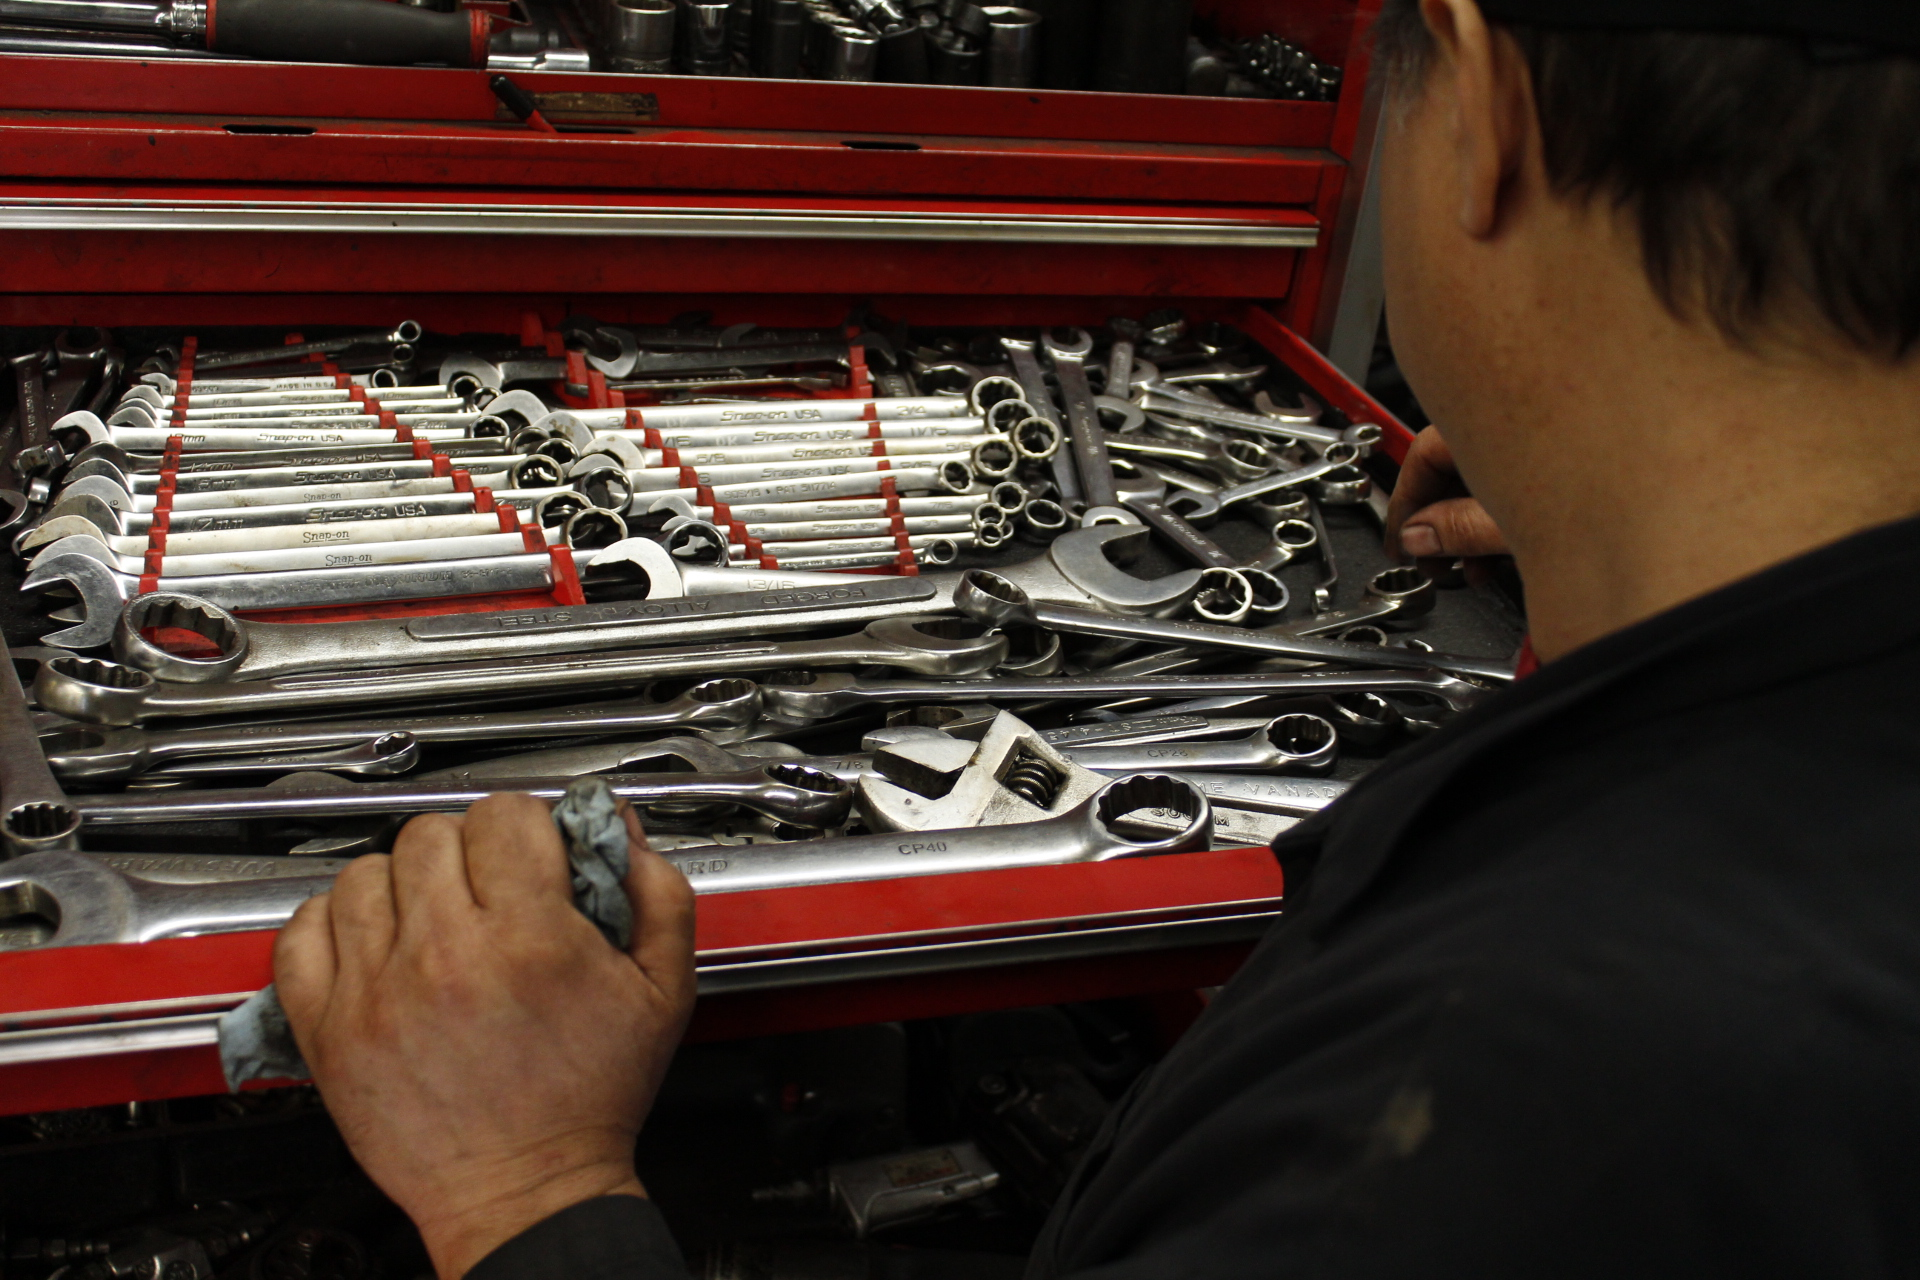 Dave searches through his wrenches